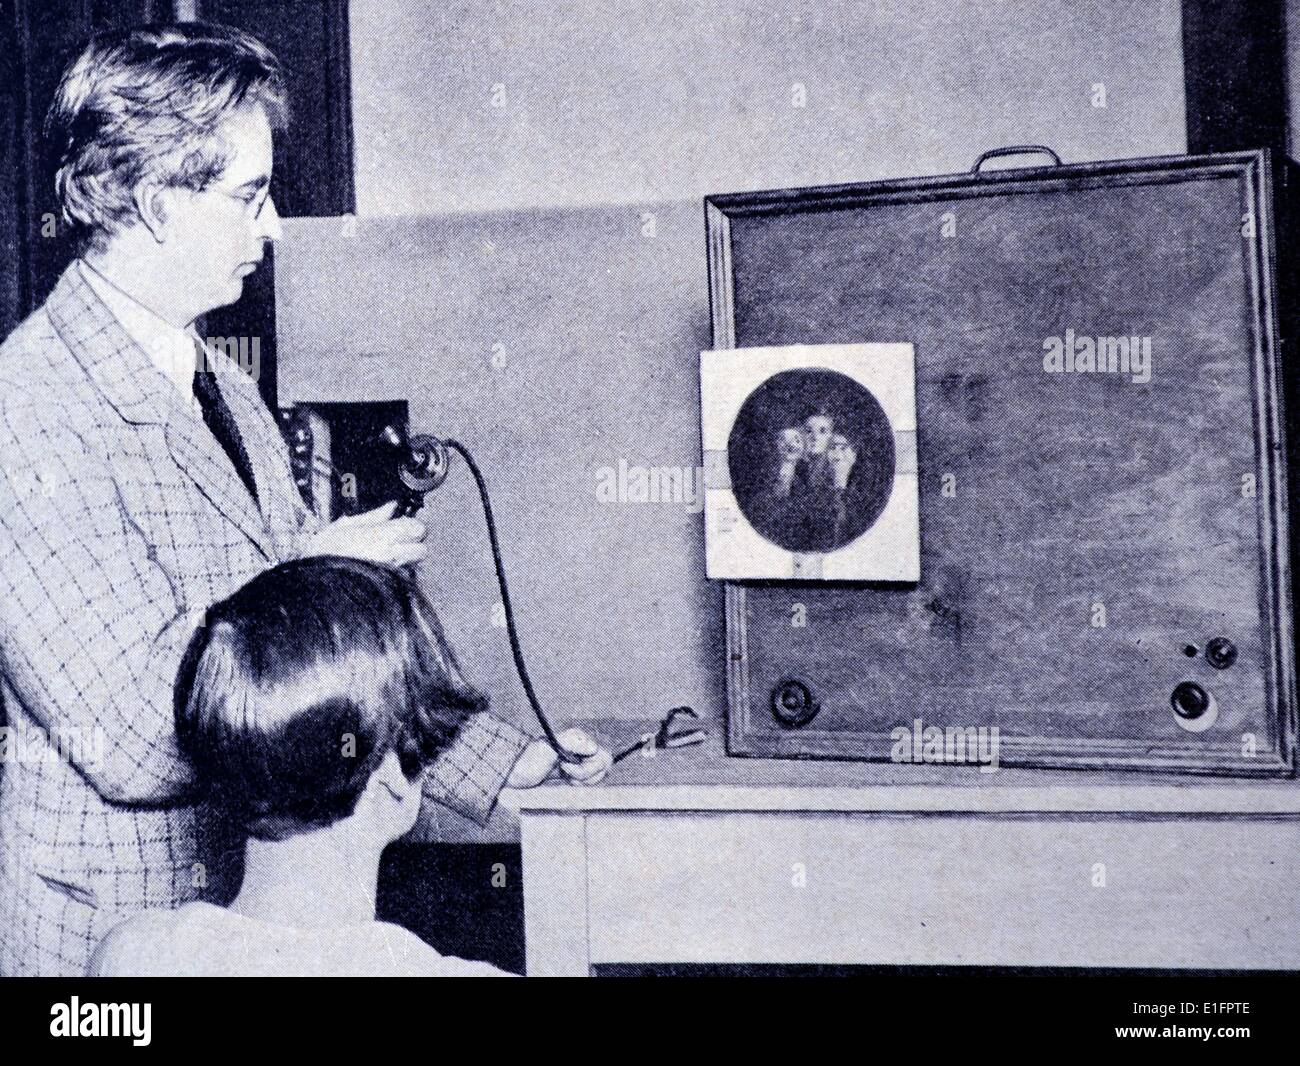 John Logie Baird the Scottish scientist, engineer, innovator and inventor of the world's first television in the 1920s - Stock Image